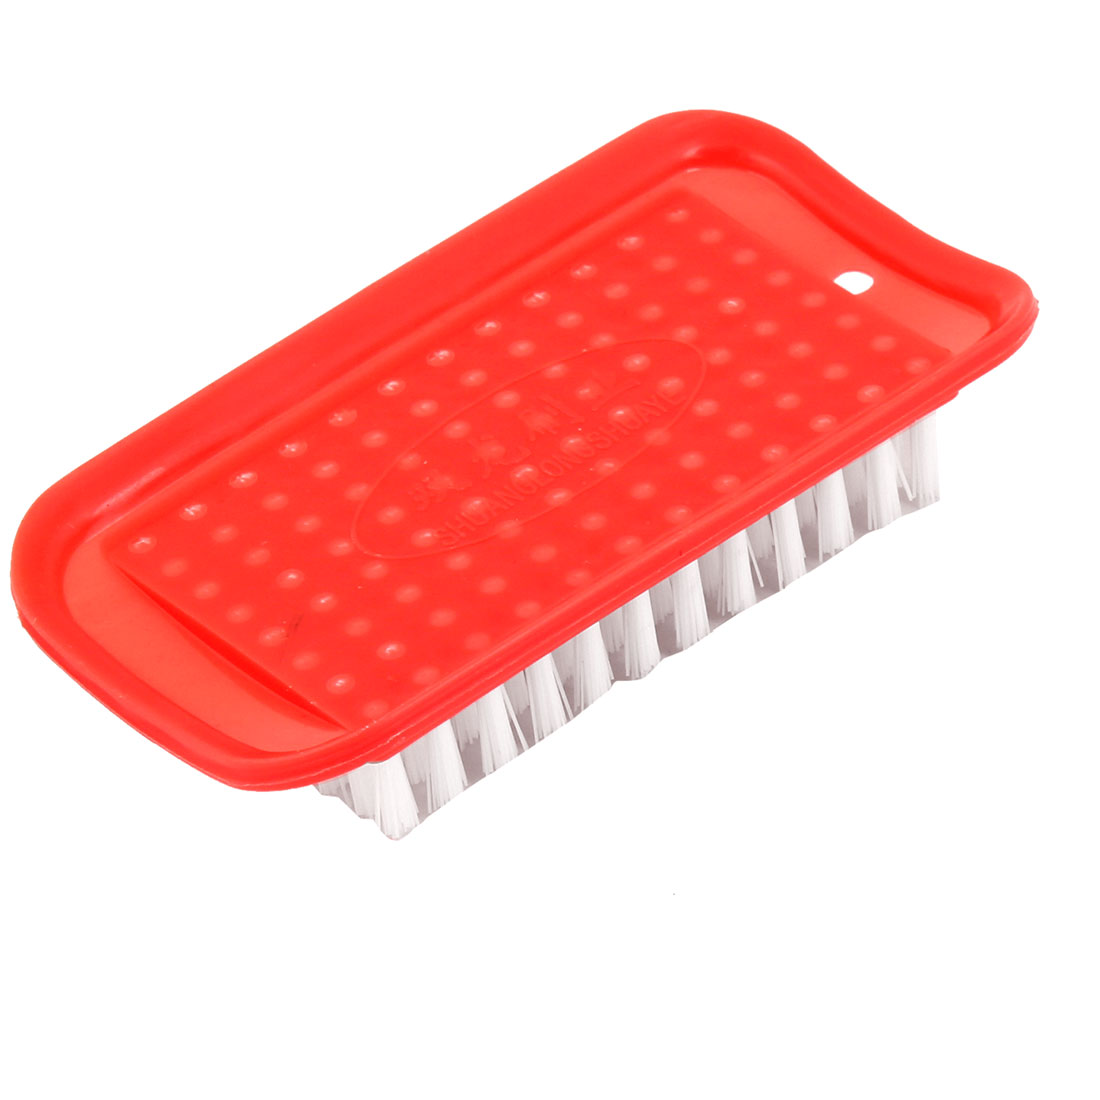 Salmon Pink Rectangle Shaped Plastic Household Laundry Brush